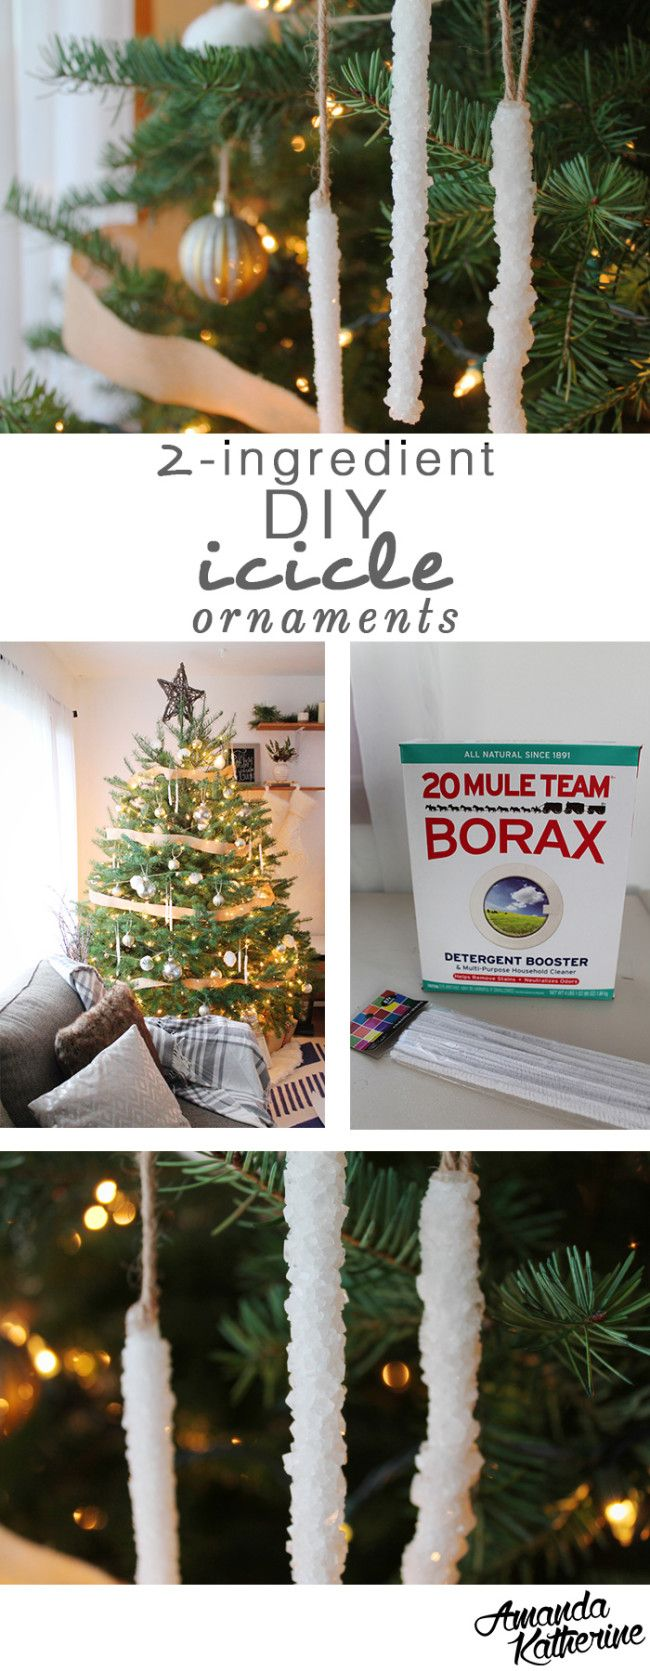 I love this SUPER simple tutorial for Borax crystal icicle ornaments! It uses just 2 ingredients, has few steps, and they aren't fragile at all. The best part - it's WAY cheaper than store-bought and they're a fun experiment to try with the kids! |http://www.amandakatherine.com/diy-icicle-ornaments/